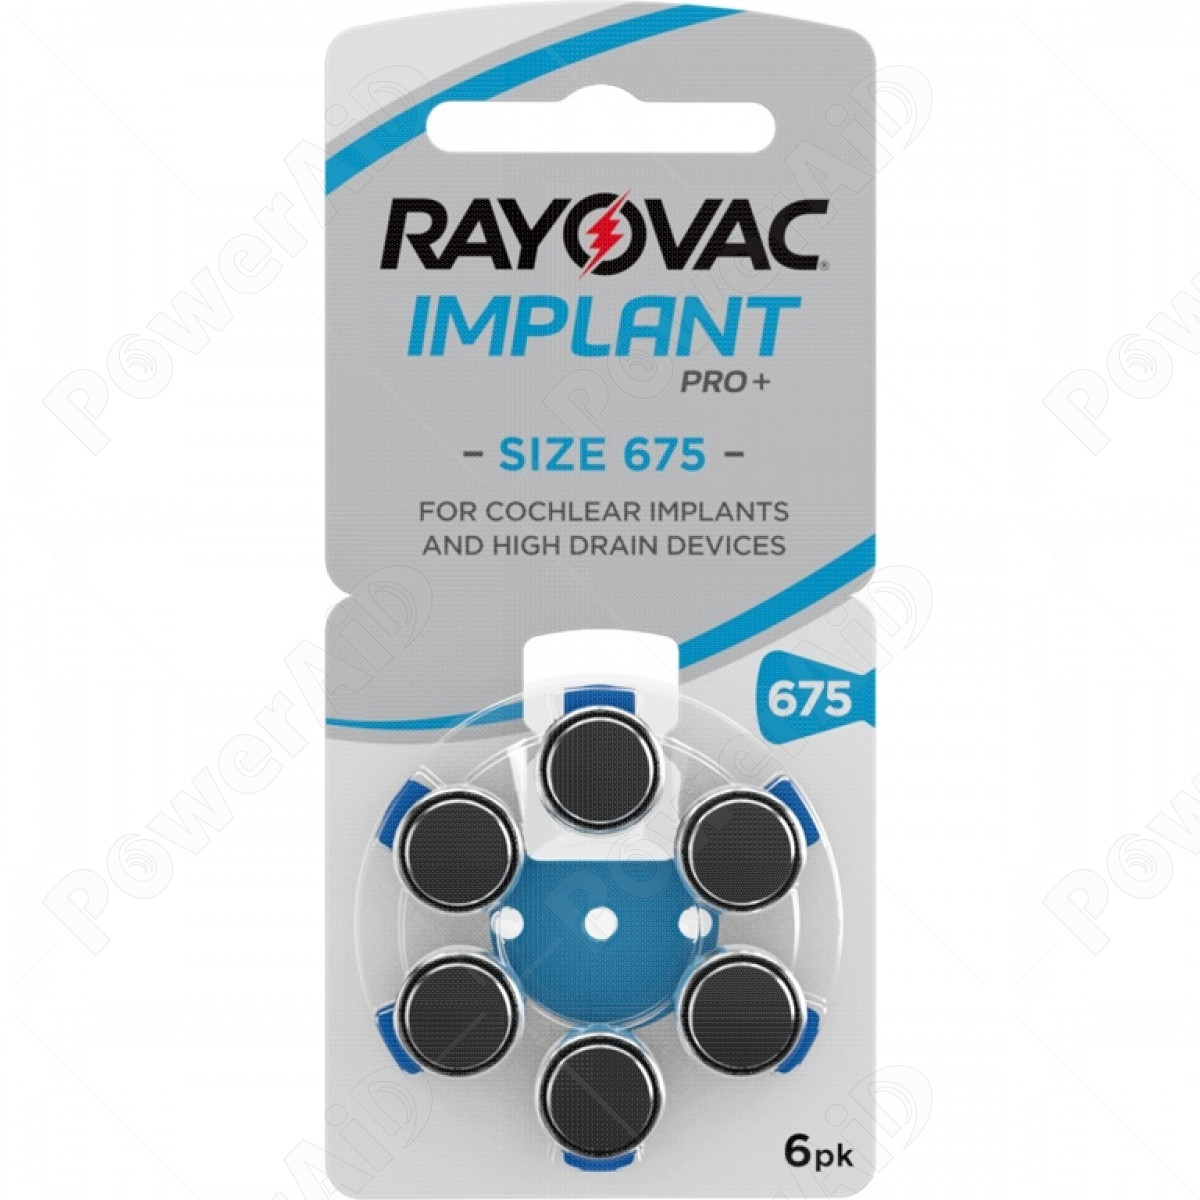 Rayovac - Blister 6 pile Implant Pro+